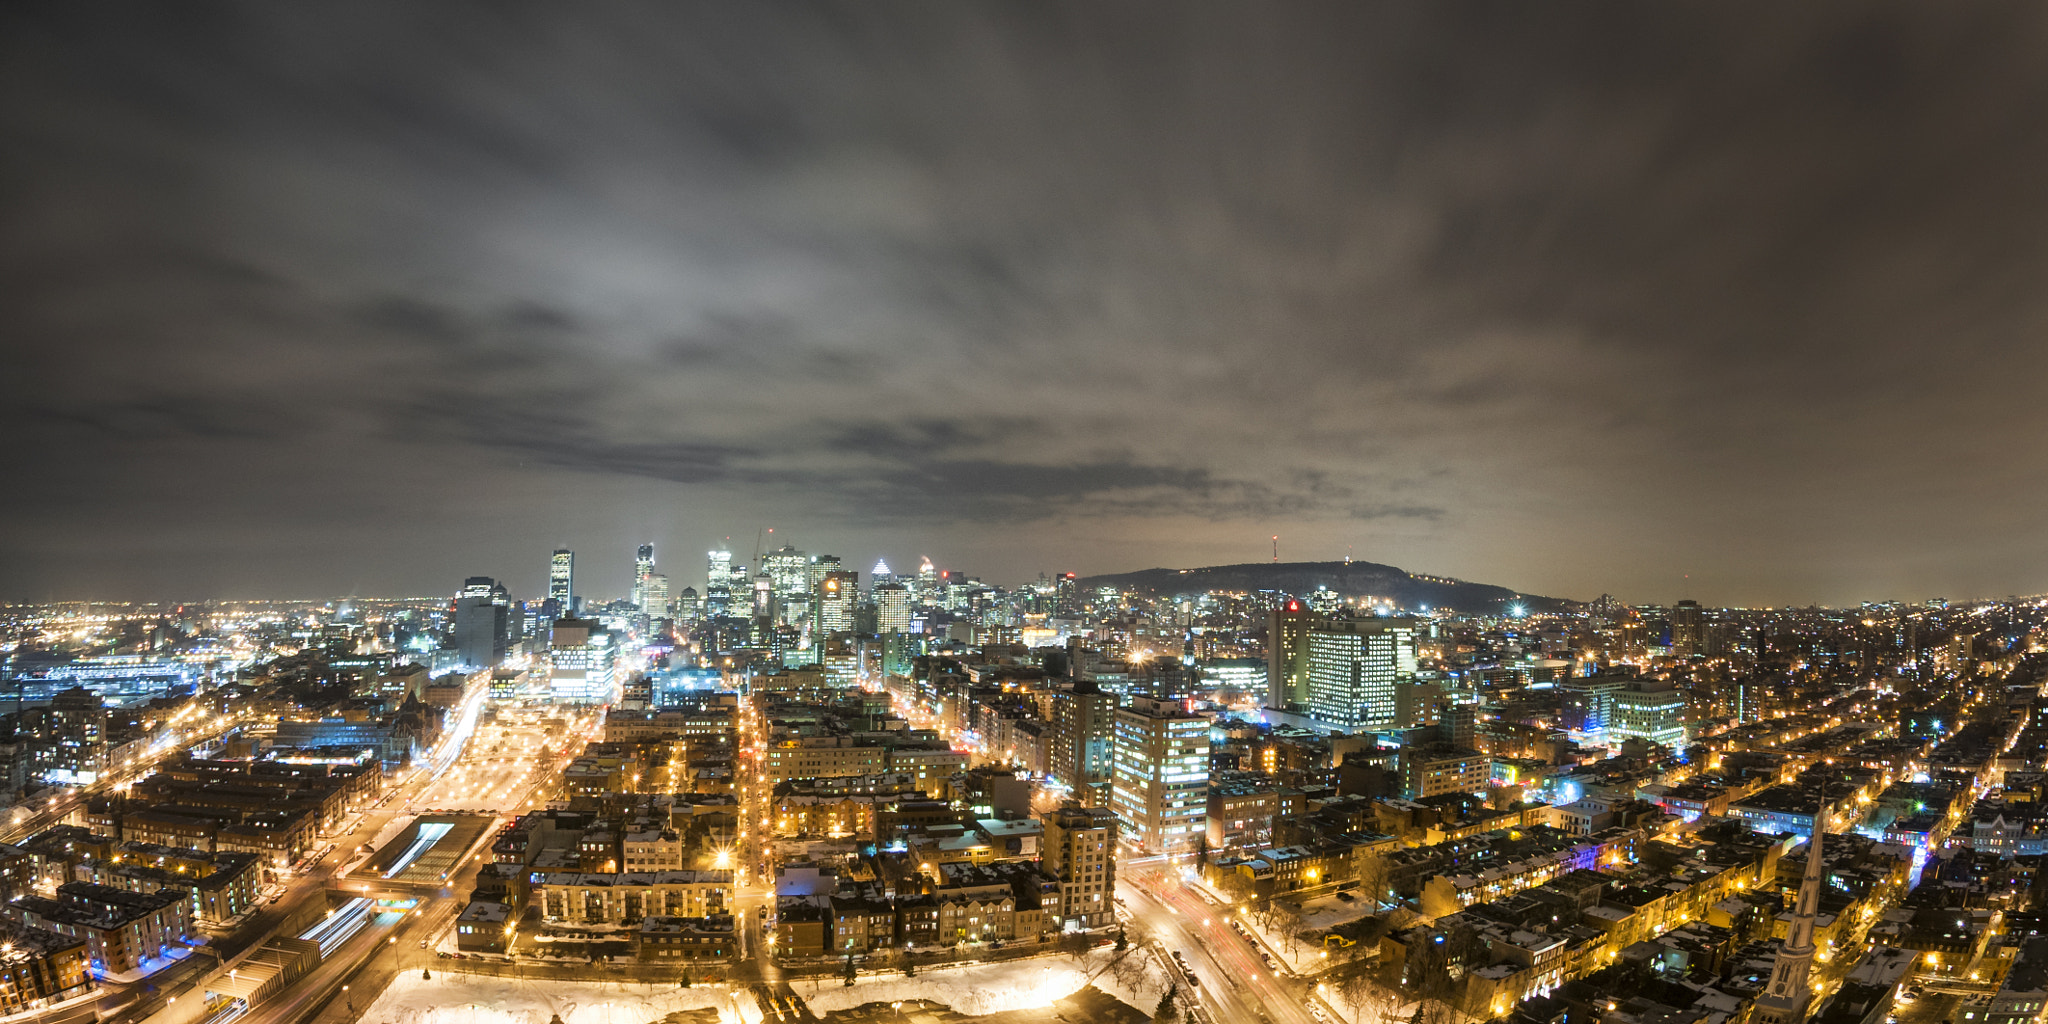 Photograph From the top of the city by Dérick Tremblay on 500px